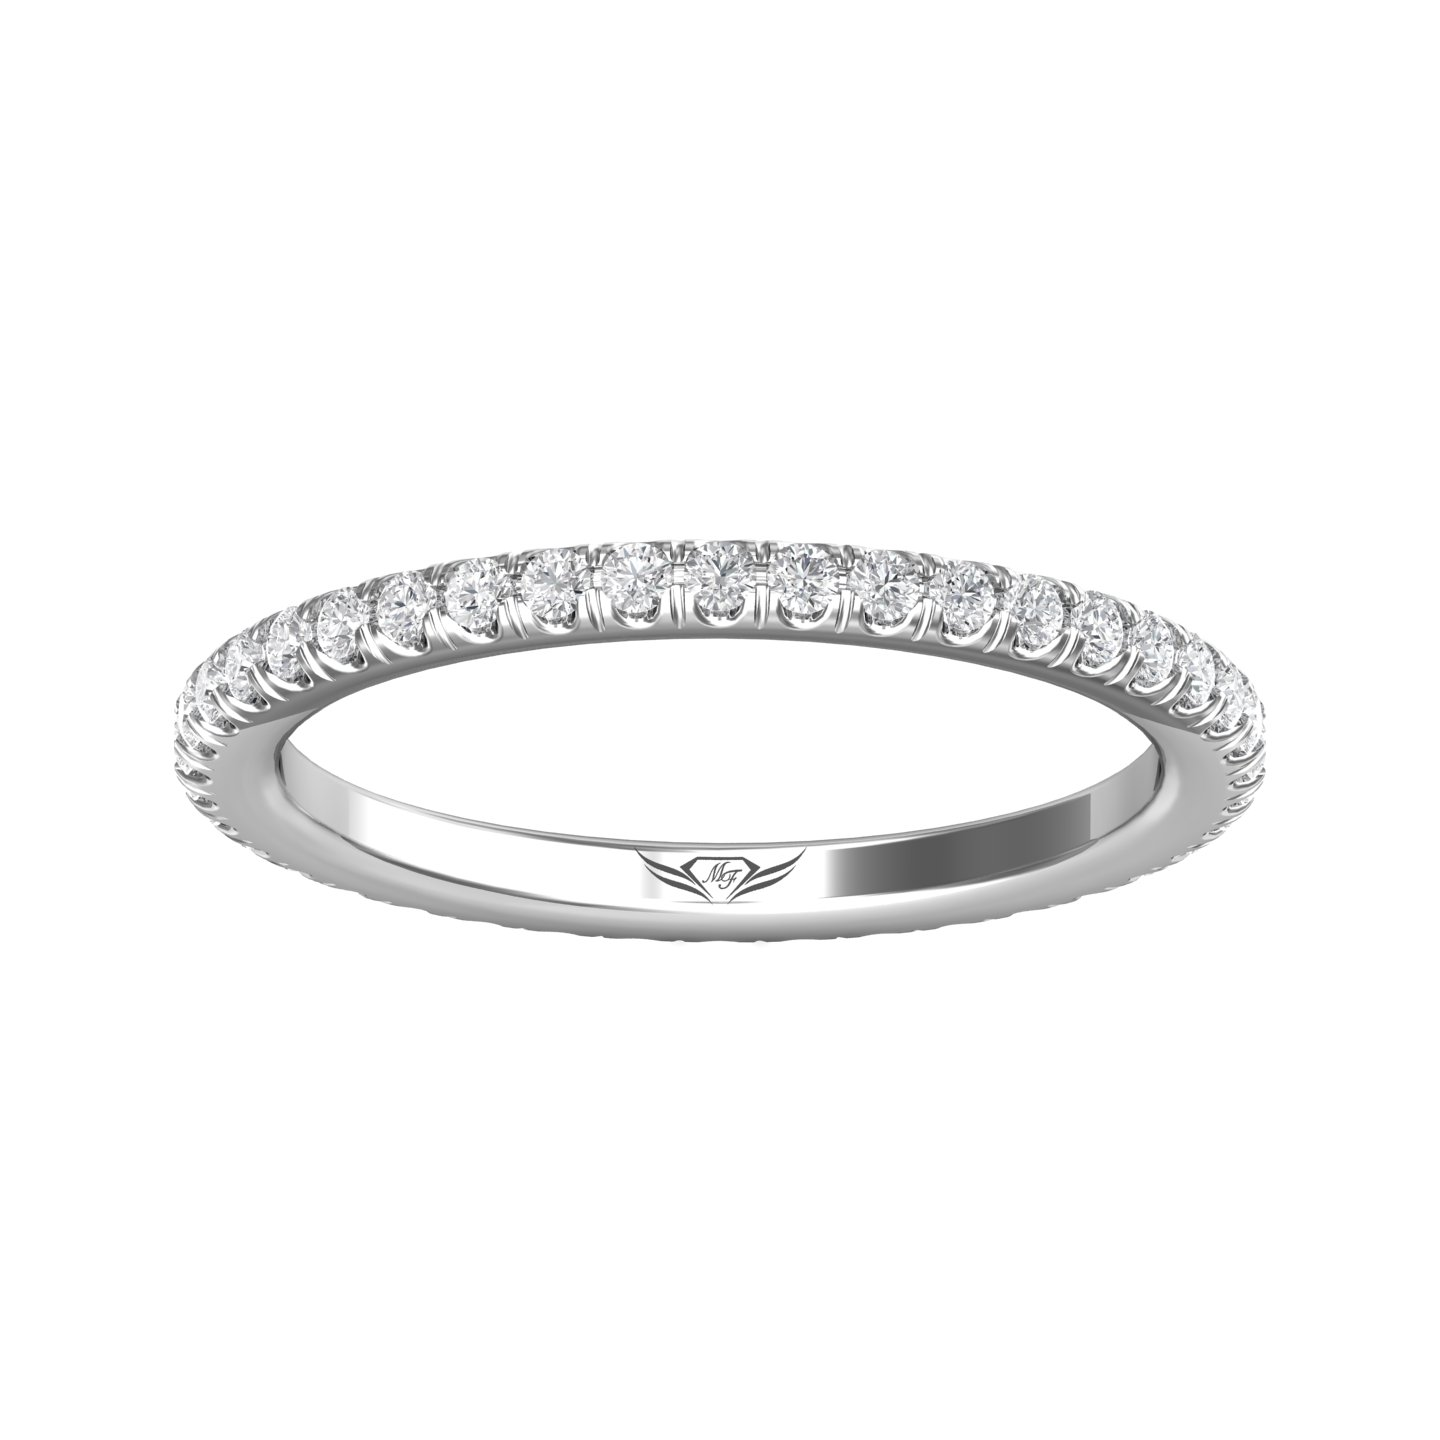 Rings - 14K White Gold FlyerFit Eternity Wedding Band - image #3